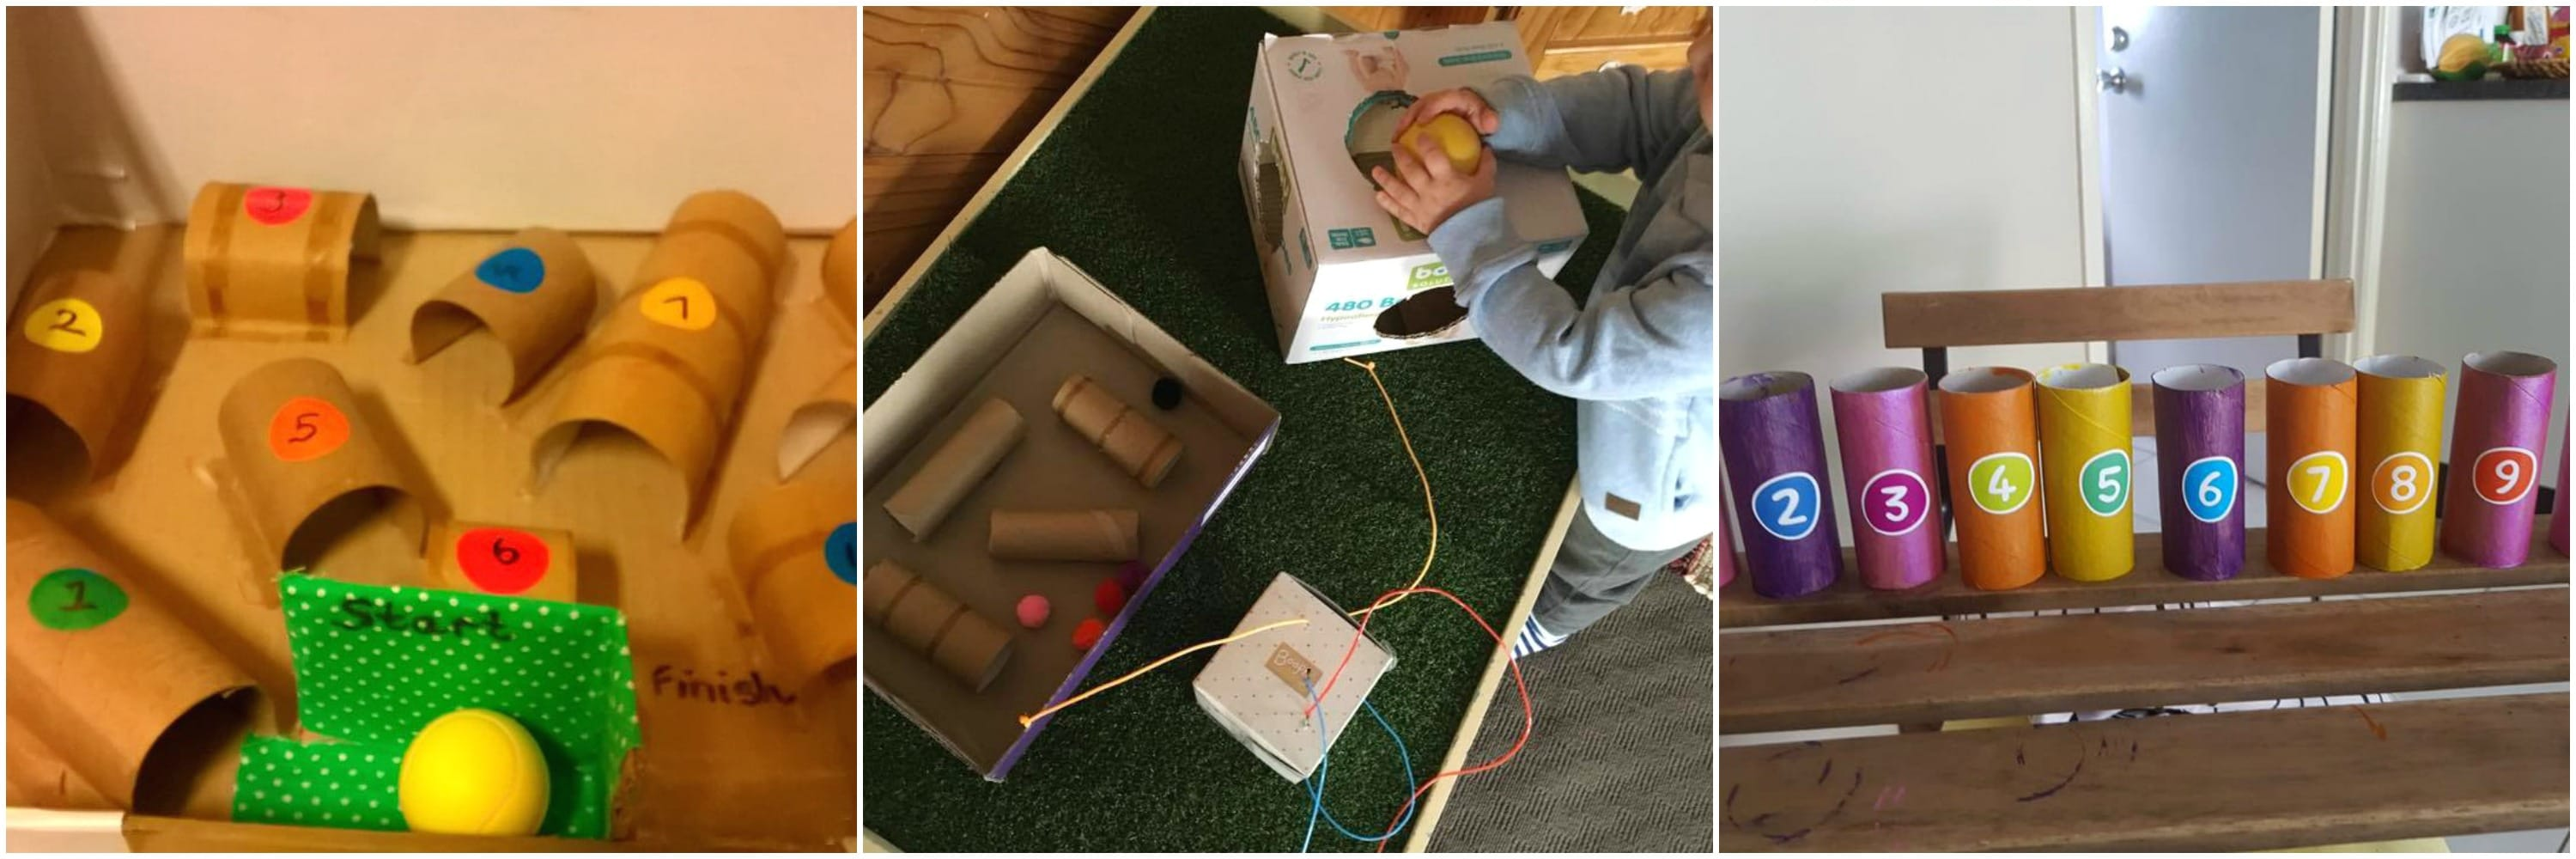 Make your own diy teacher resources for play using the simple ideas and inspiration shared by these early childhood educators. Providing opportunities for learning doesn't need to be expensive for parents, homeschool and home daycare when you use these clever ideas.